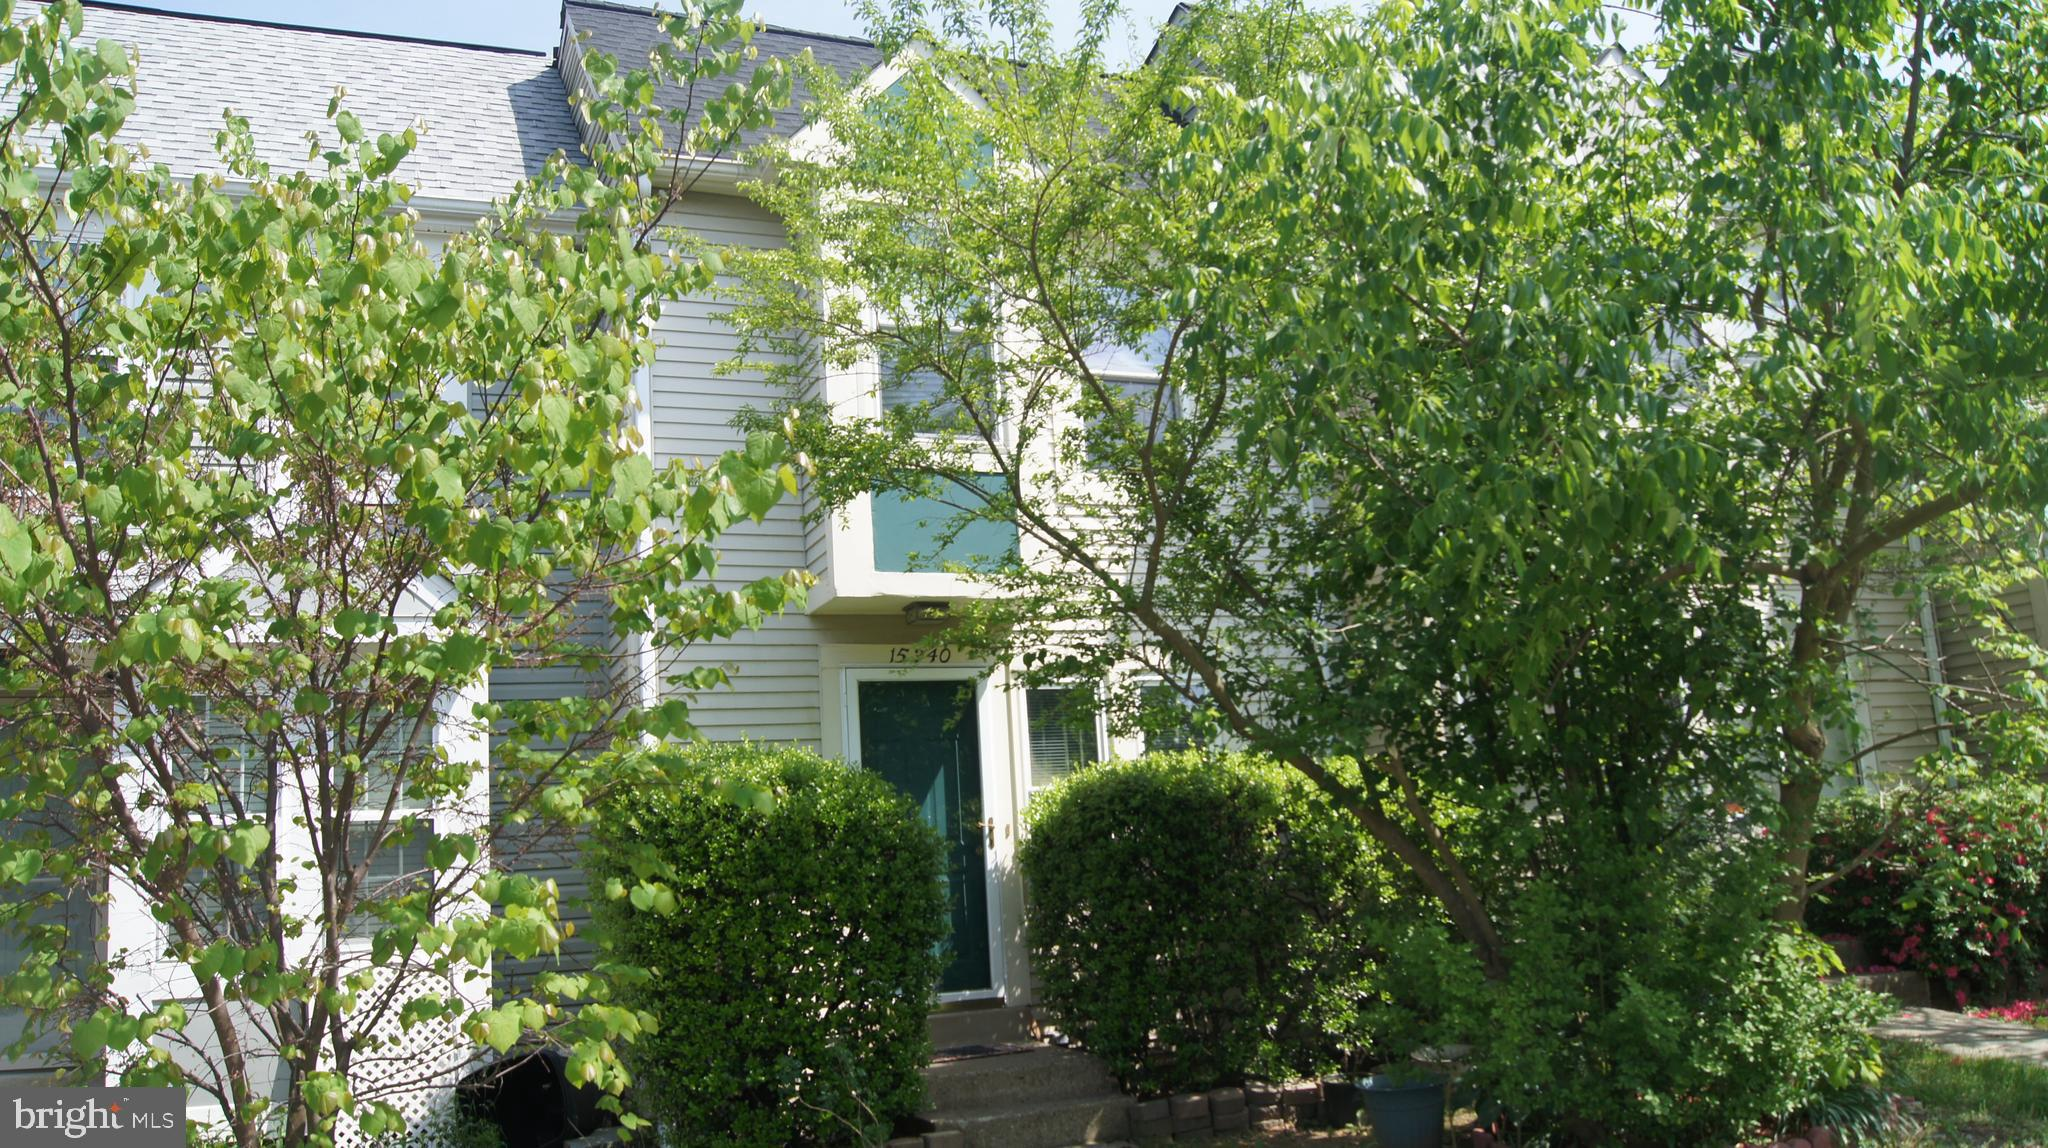 As-is 2 bedroom 2 bathroom townhouse in Rippon Landing. Roof and water heater replace in 2018 Priced to sell. 1 Year 2-10 Home Buyer Warranty included.